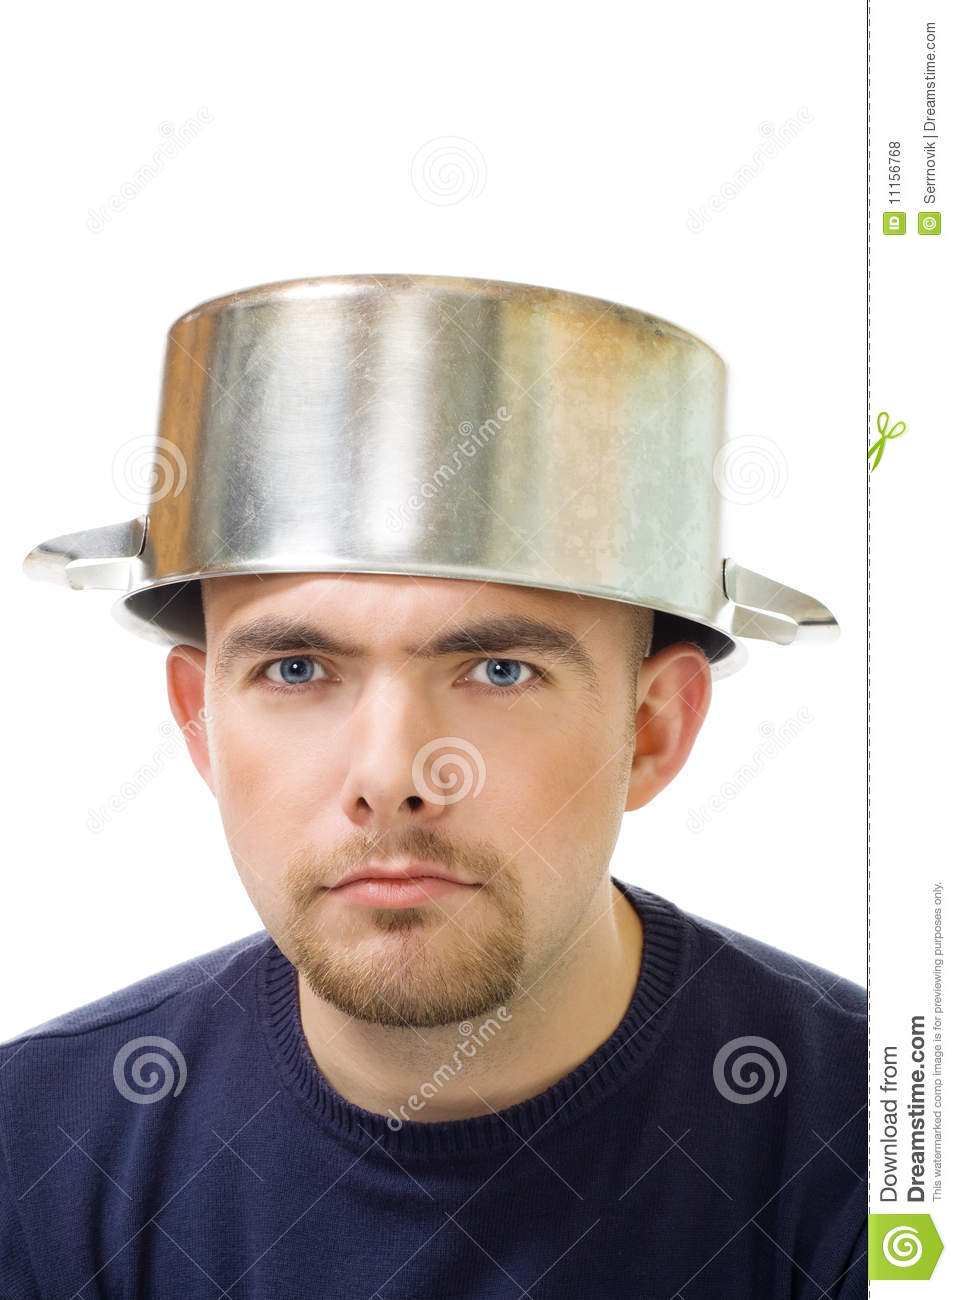 [Image: serious-man-stew-pan-head-11156768.jpg]